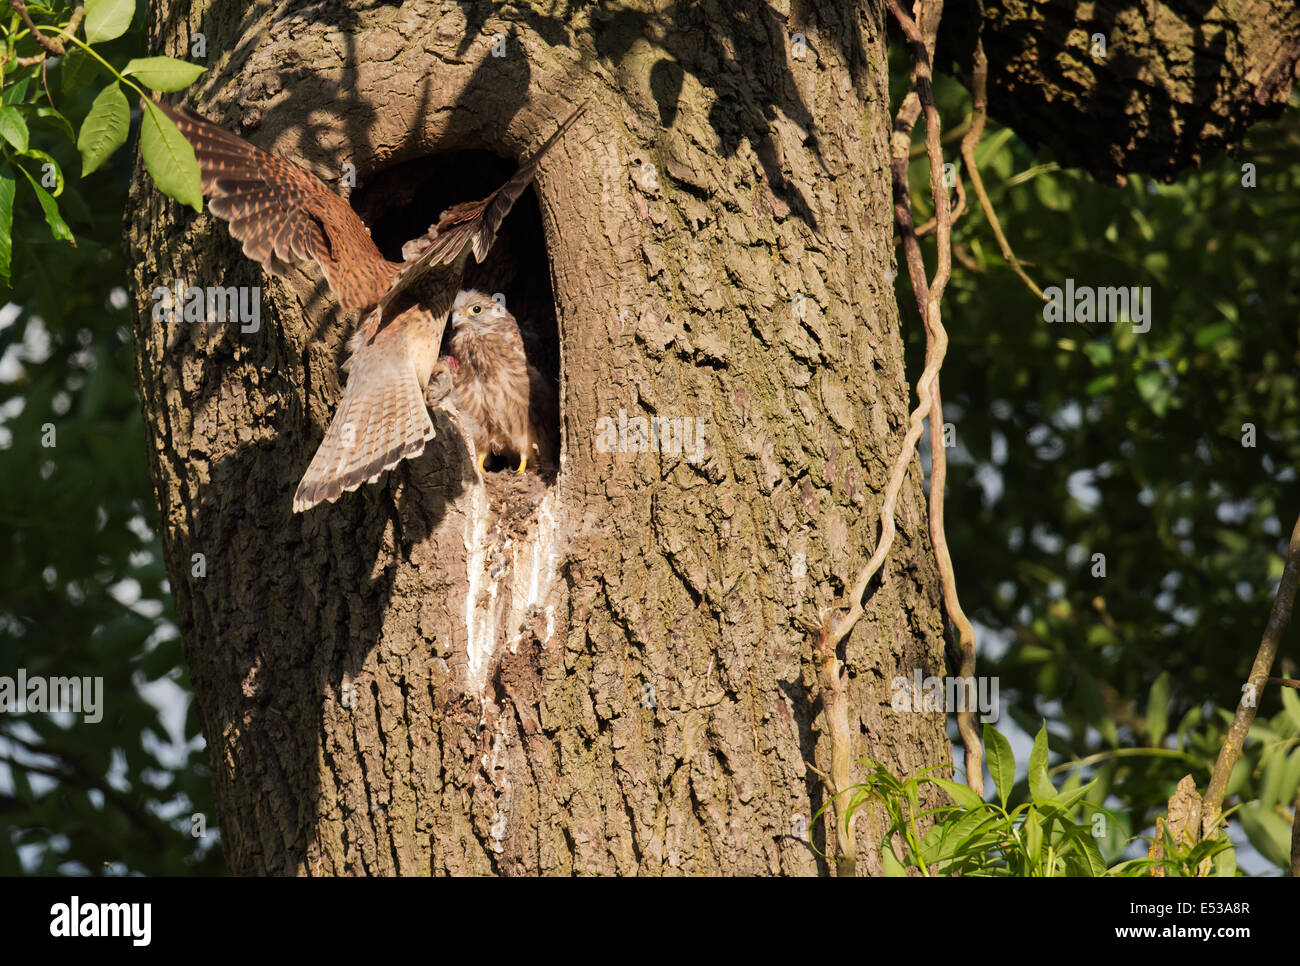 Wild female Kestrel, Falco tinnunculus delivering food into nest of waiting chicks - Stock Image